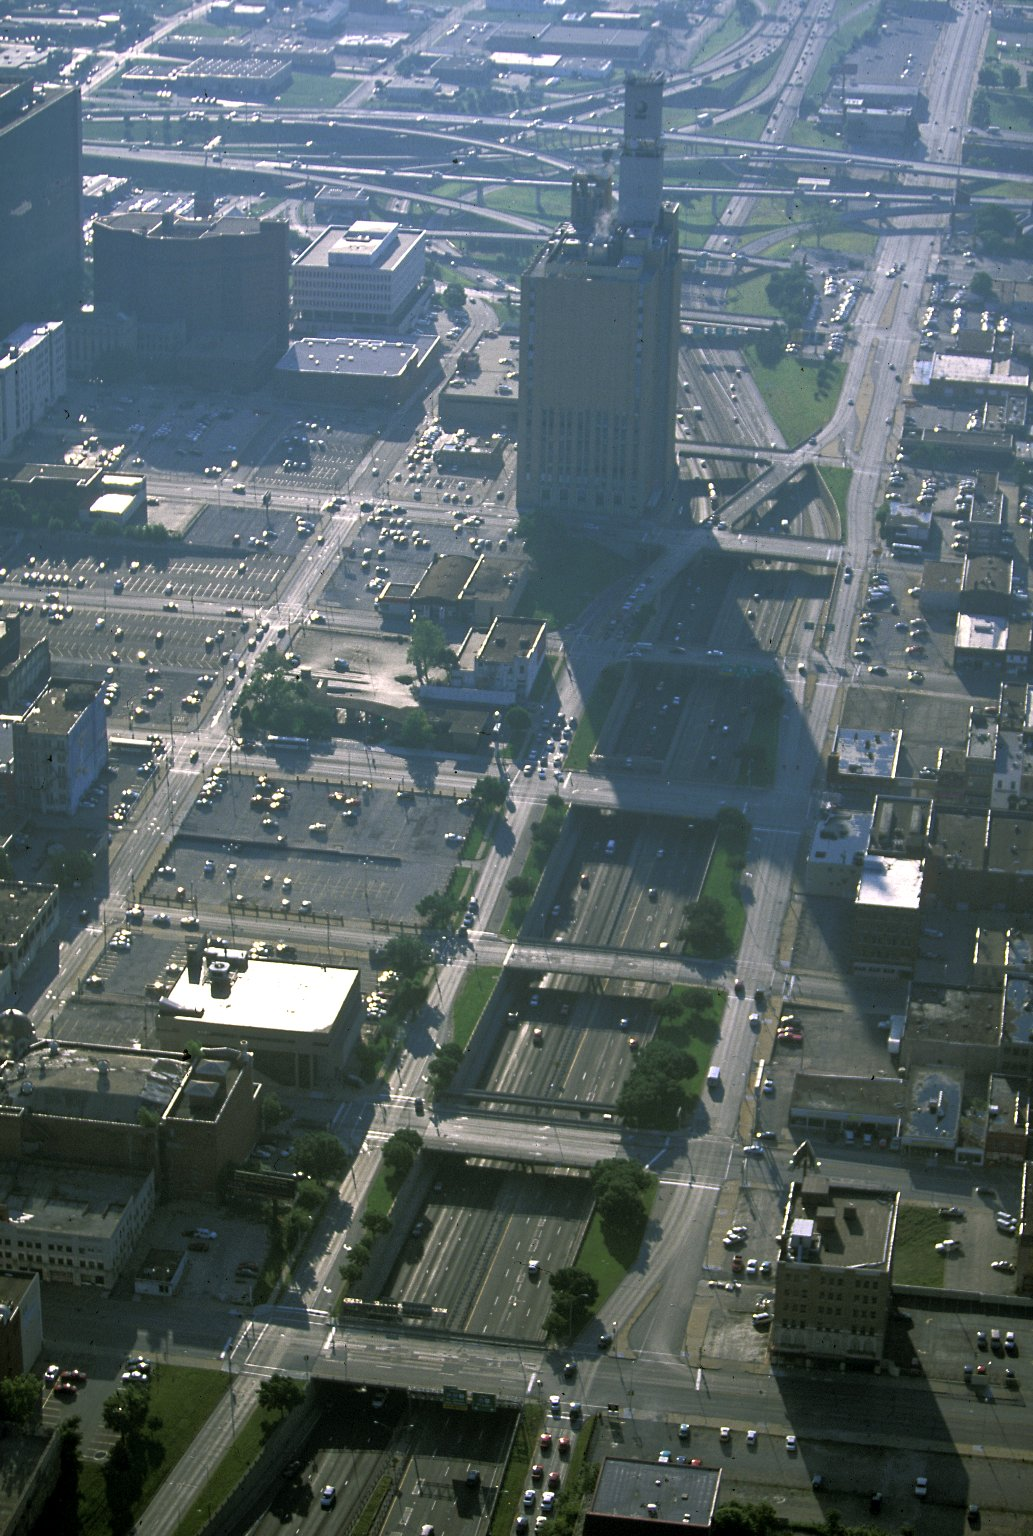 Downtown Kansas City, Missouri - south side of loop, AT and T building